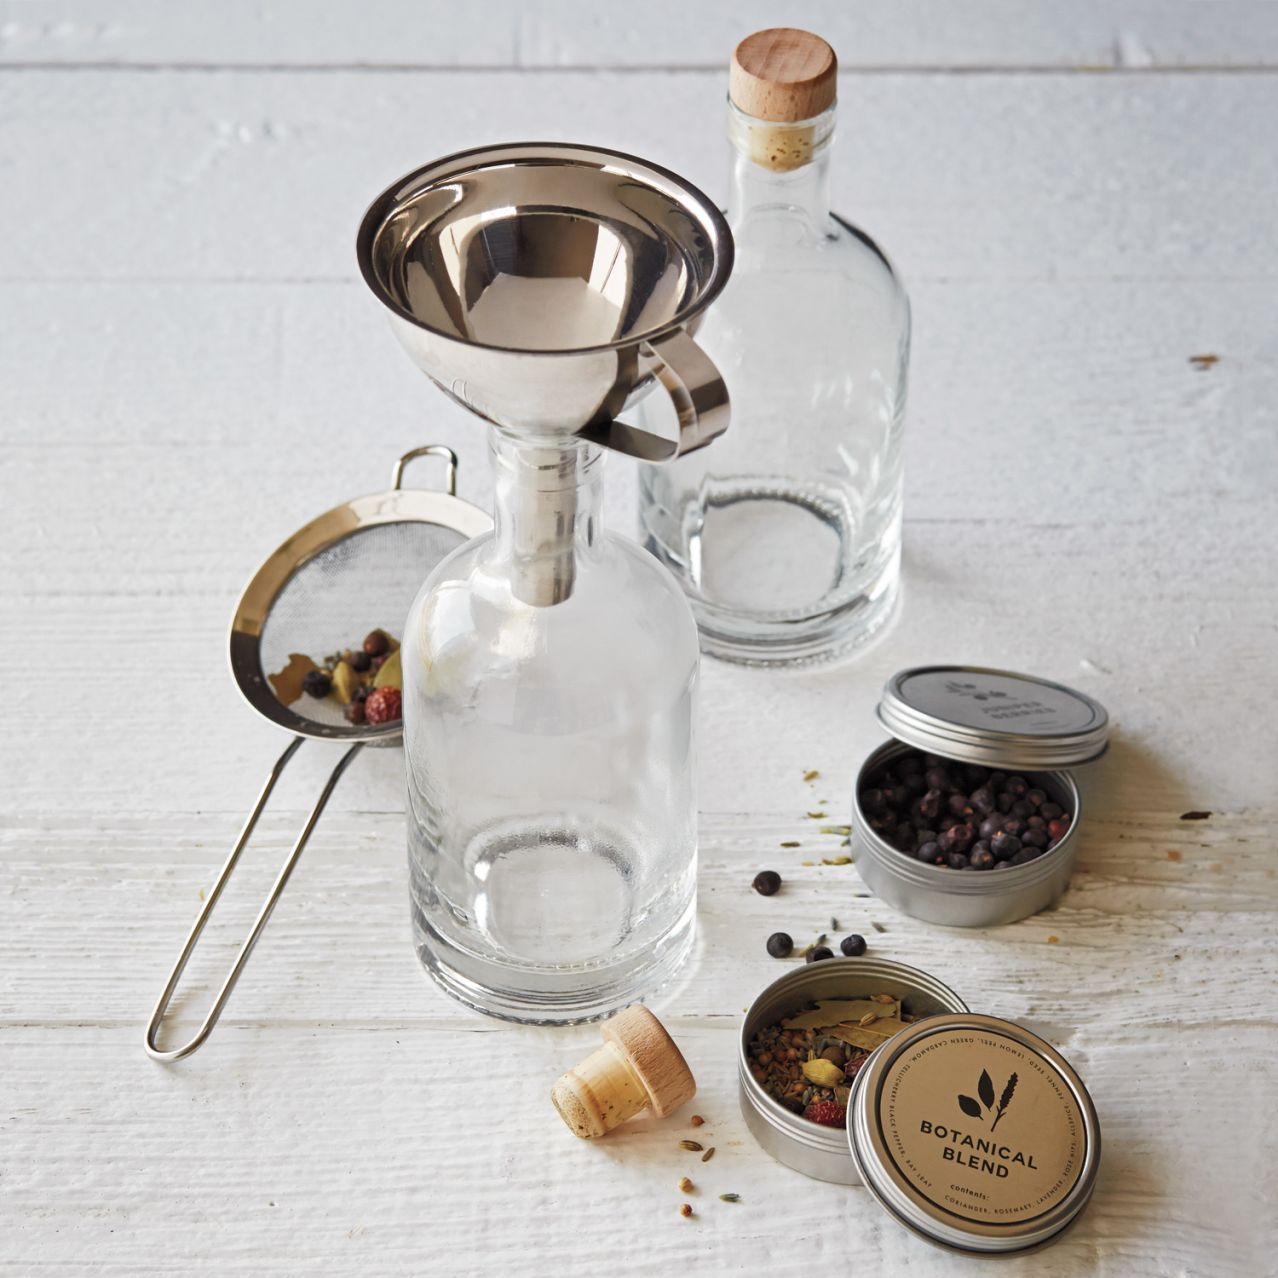 The Homemade Gin Kit By Wu0026P Design | Sur La Table. Gift IdeasParty ...